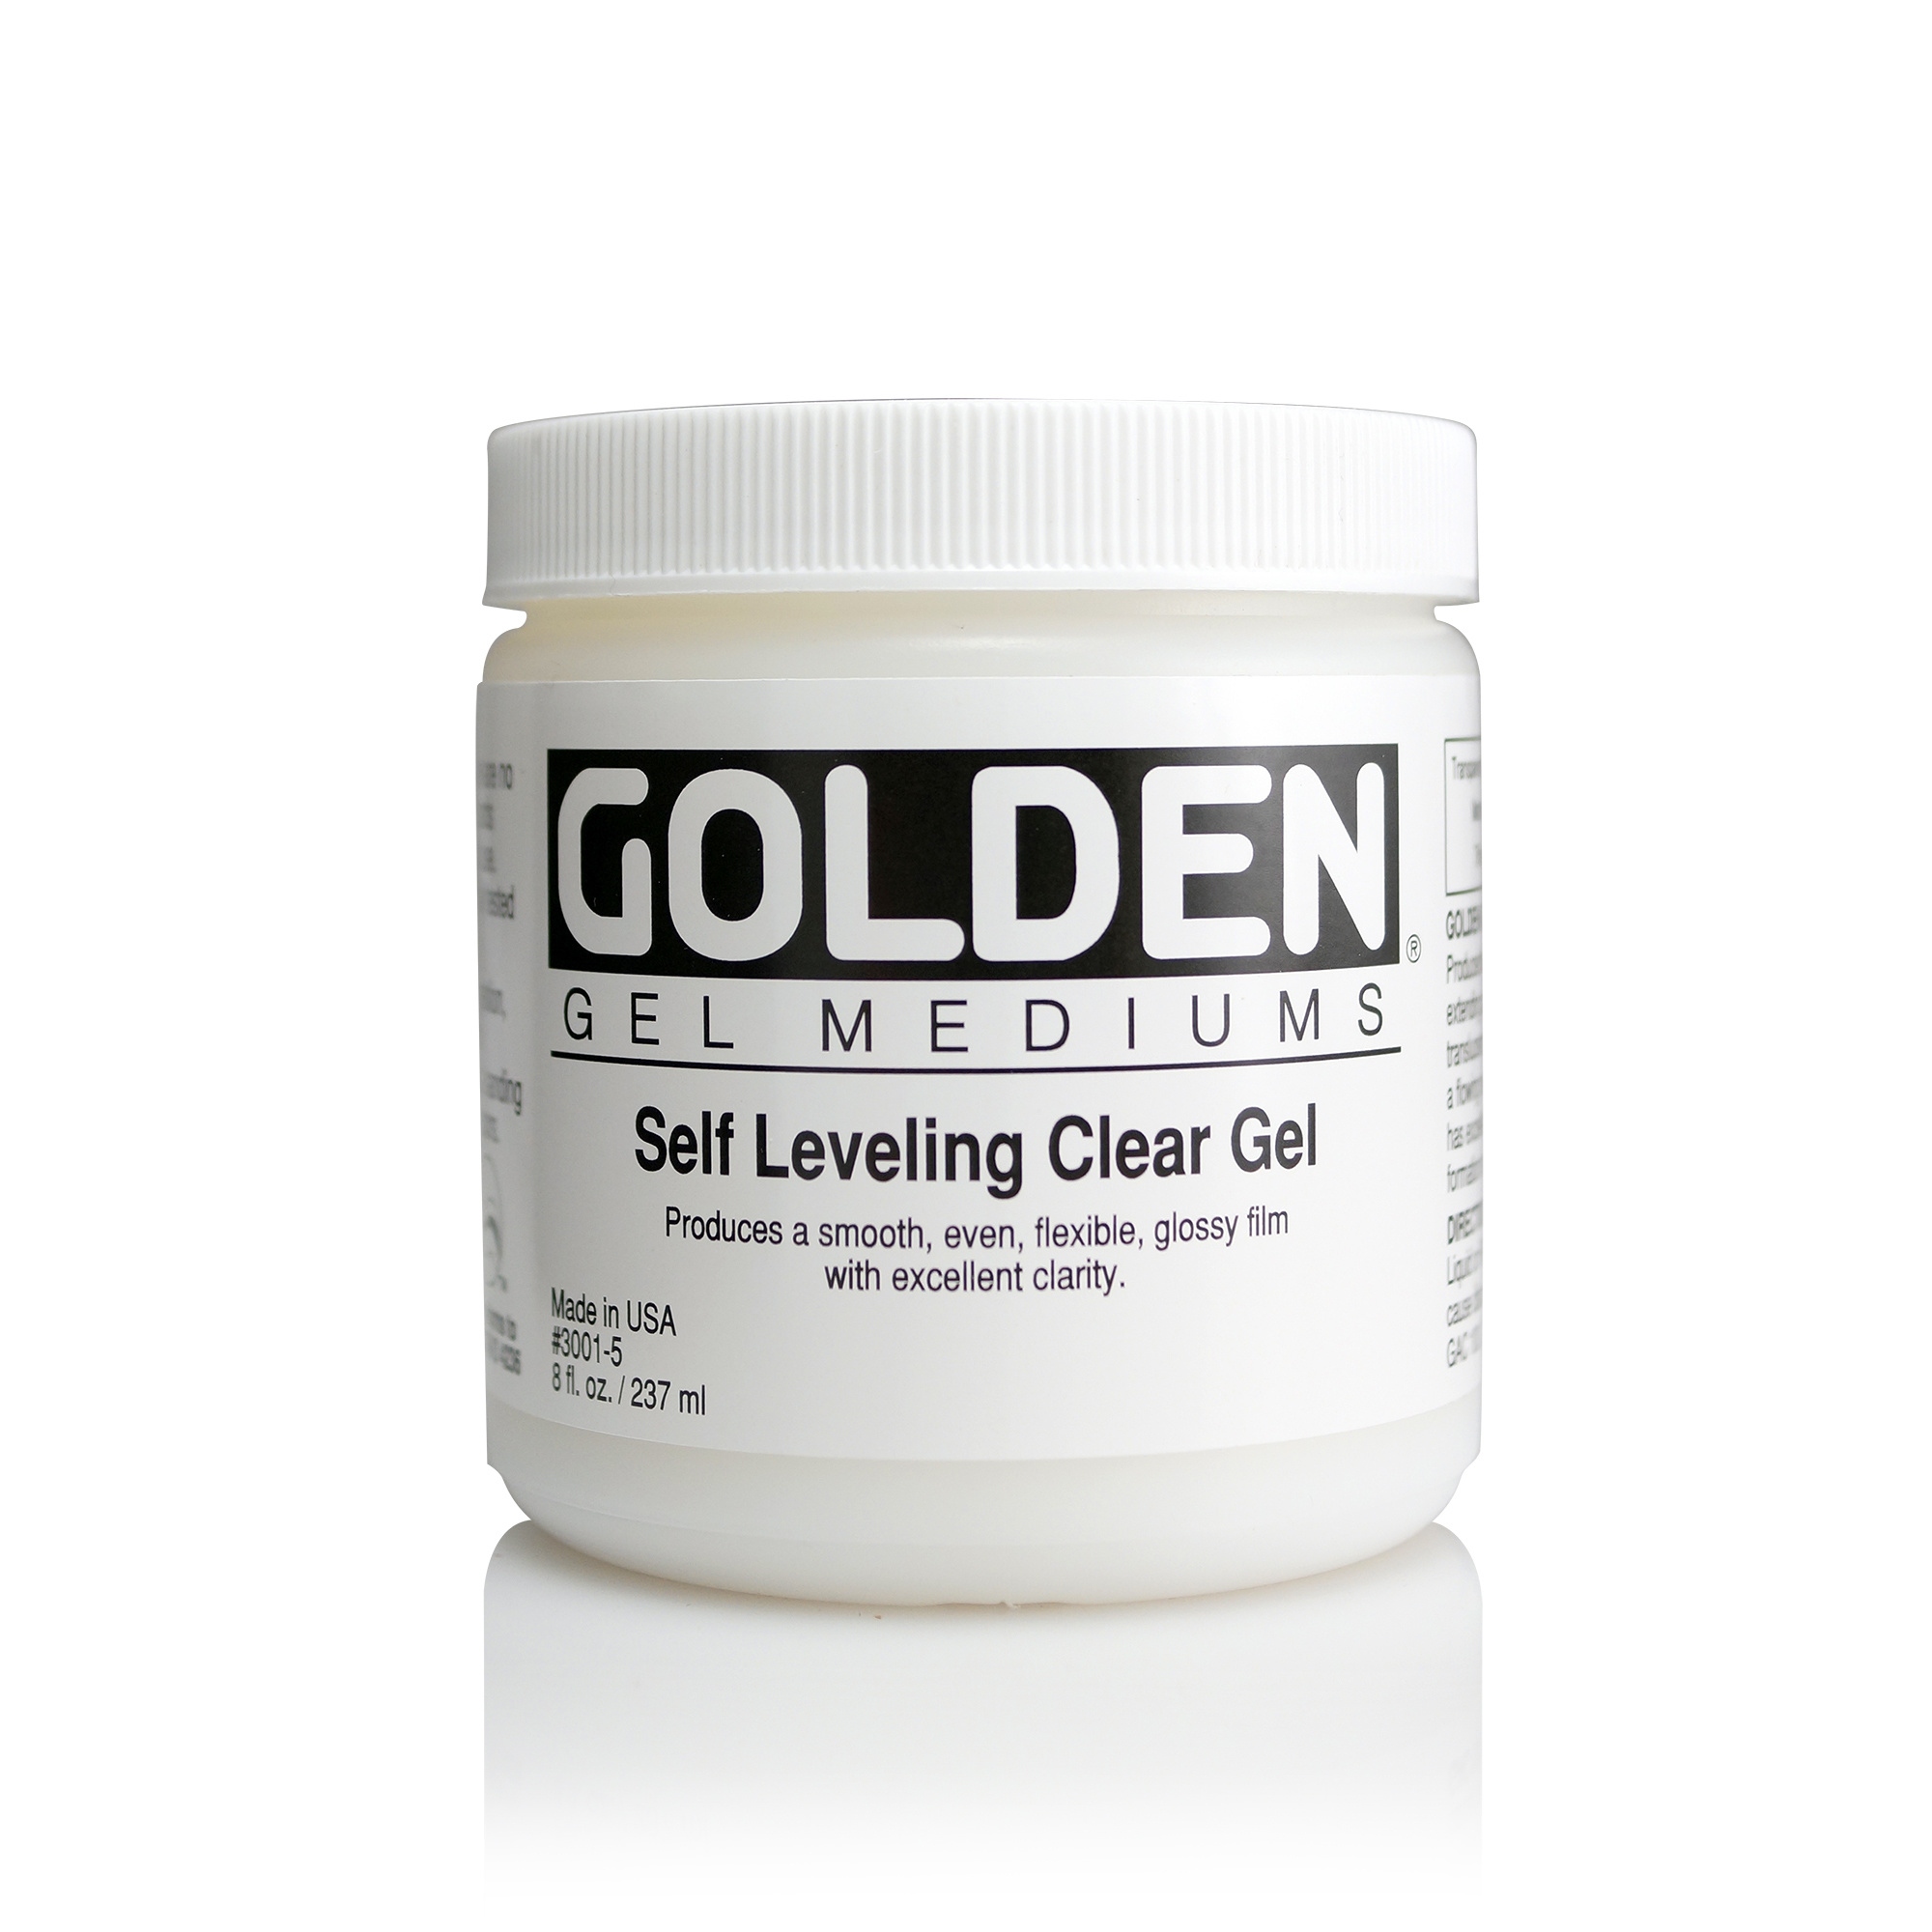 GOLDEN GOLDEN ACRYLIC MEDIUM CLEAR SELF LEVELING GEL